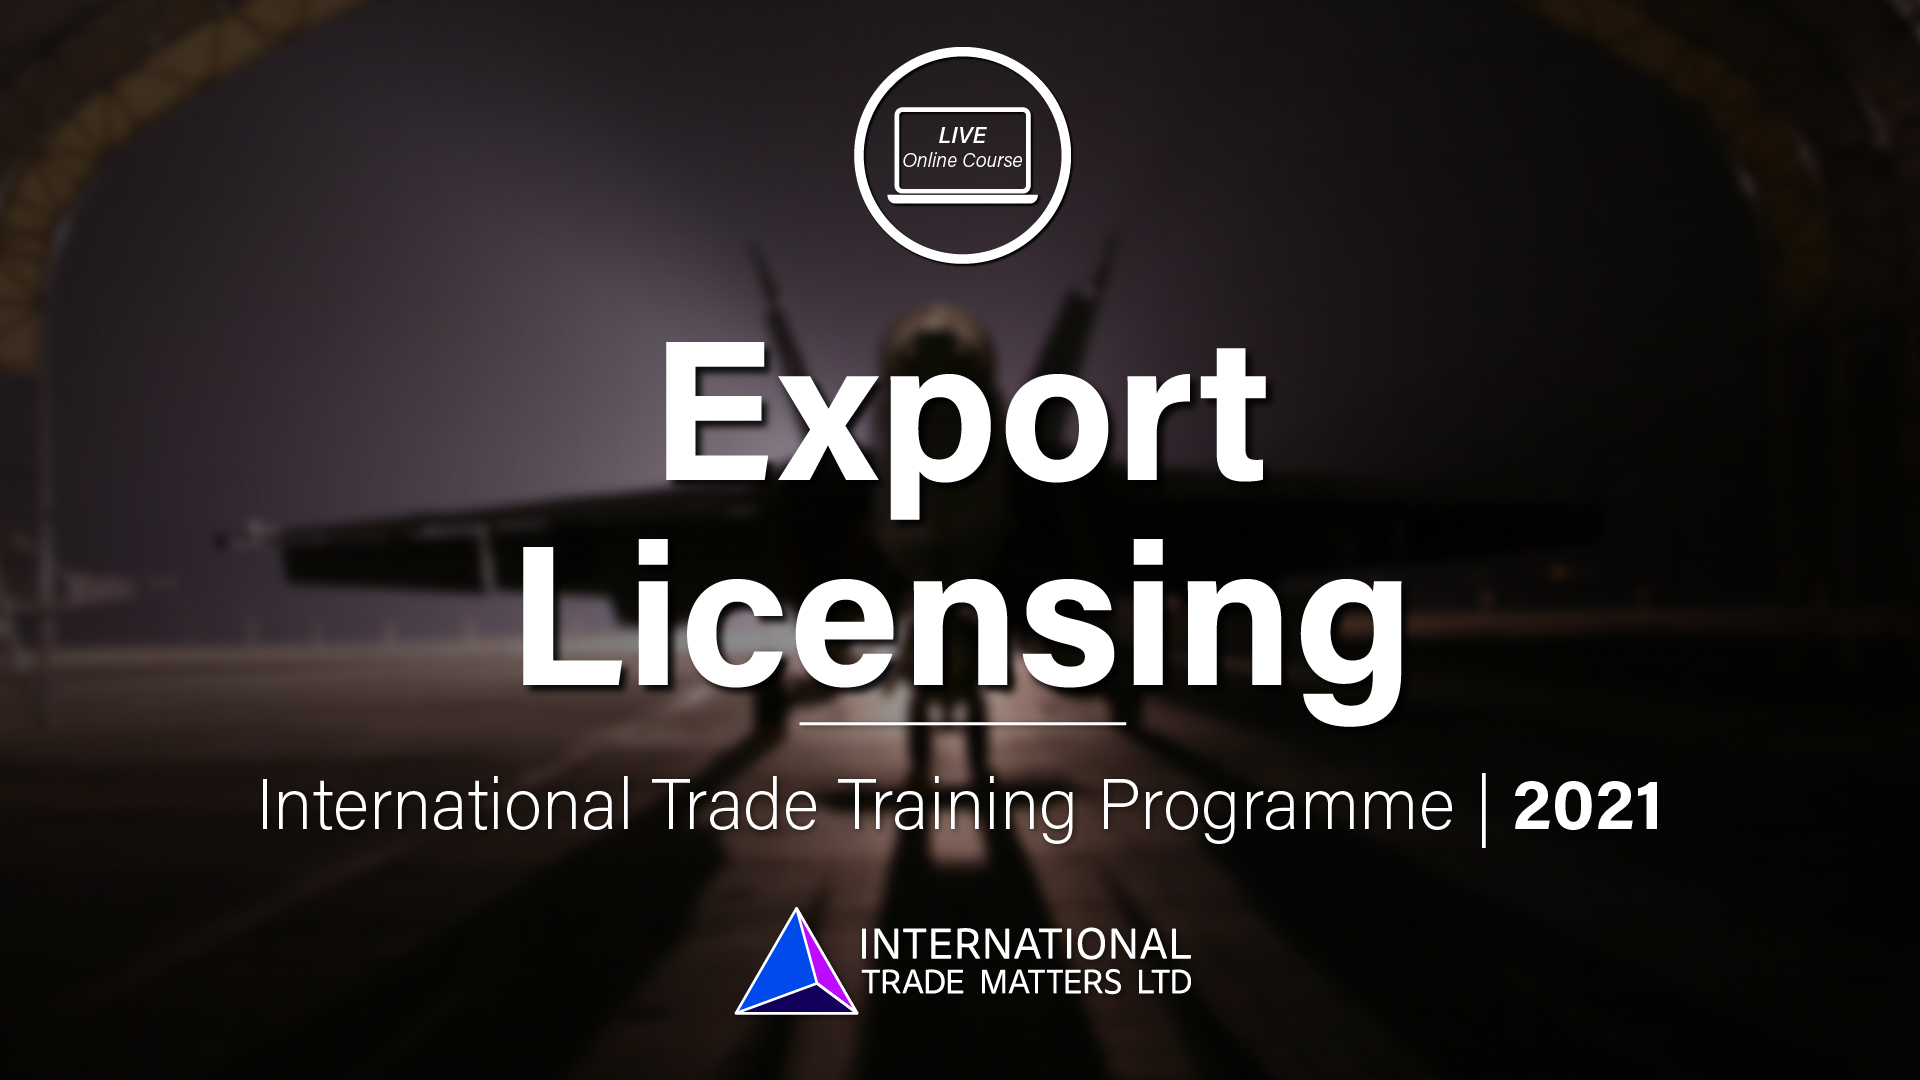 Export Controls & Licensing  - An Online Course